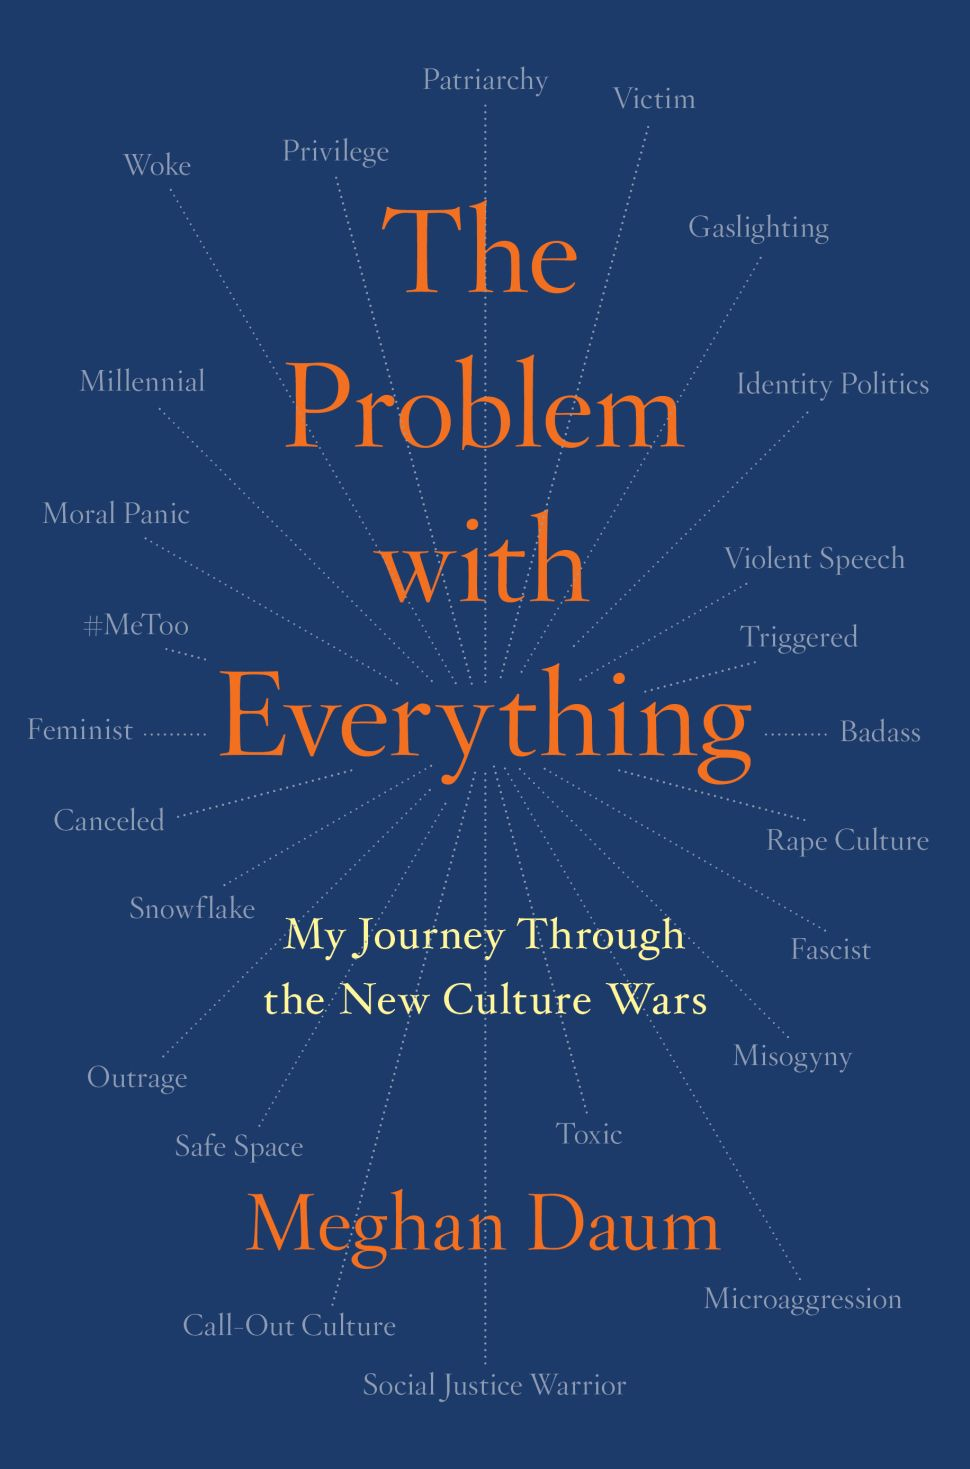 The Problem With Meghan Daum's 'The Problem With Everything'